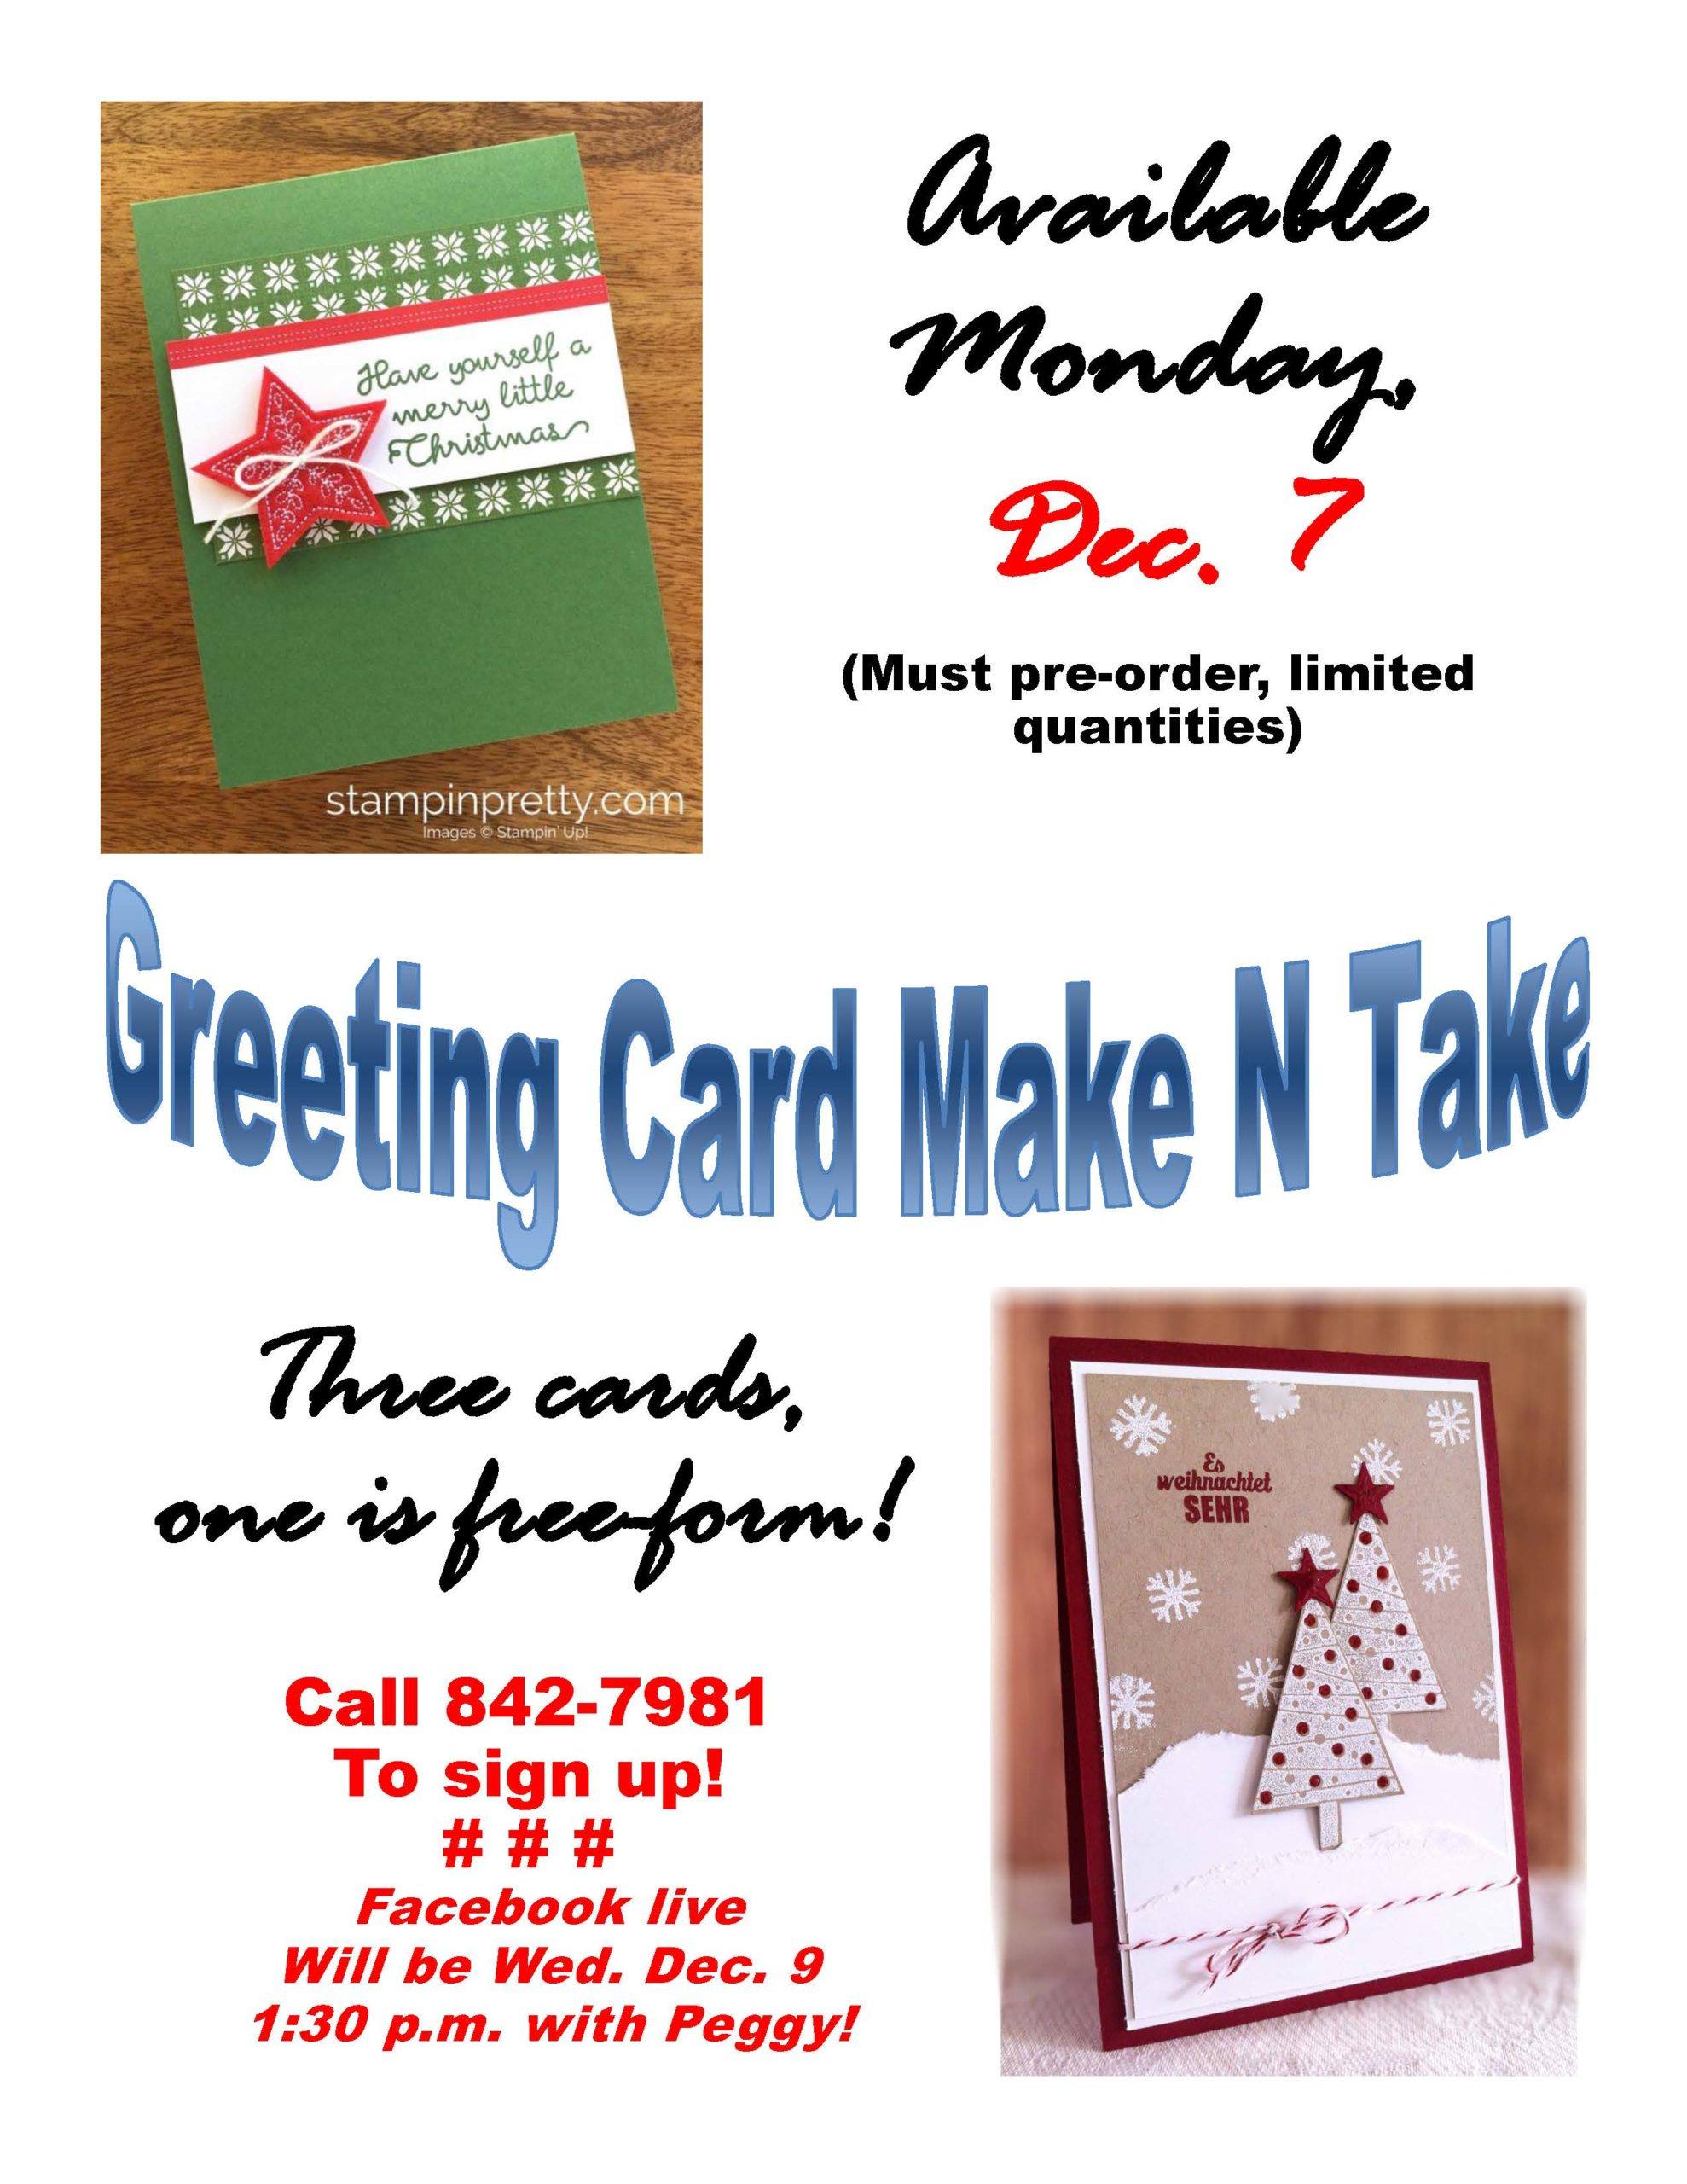 Beginning December 7, we will have Holiday Card Take and Make Kits available for pick-up. On Wednesday, December 9th at 1:30 pm, Peggy will do a Facebook Live instructional video. Supplies are limited, and pre-registration required.